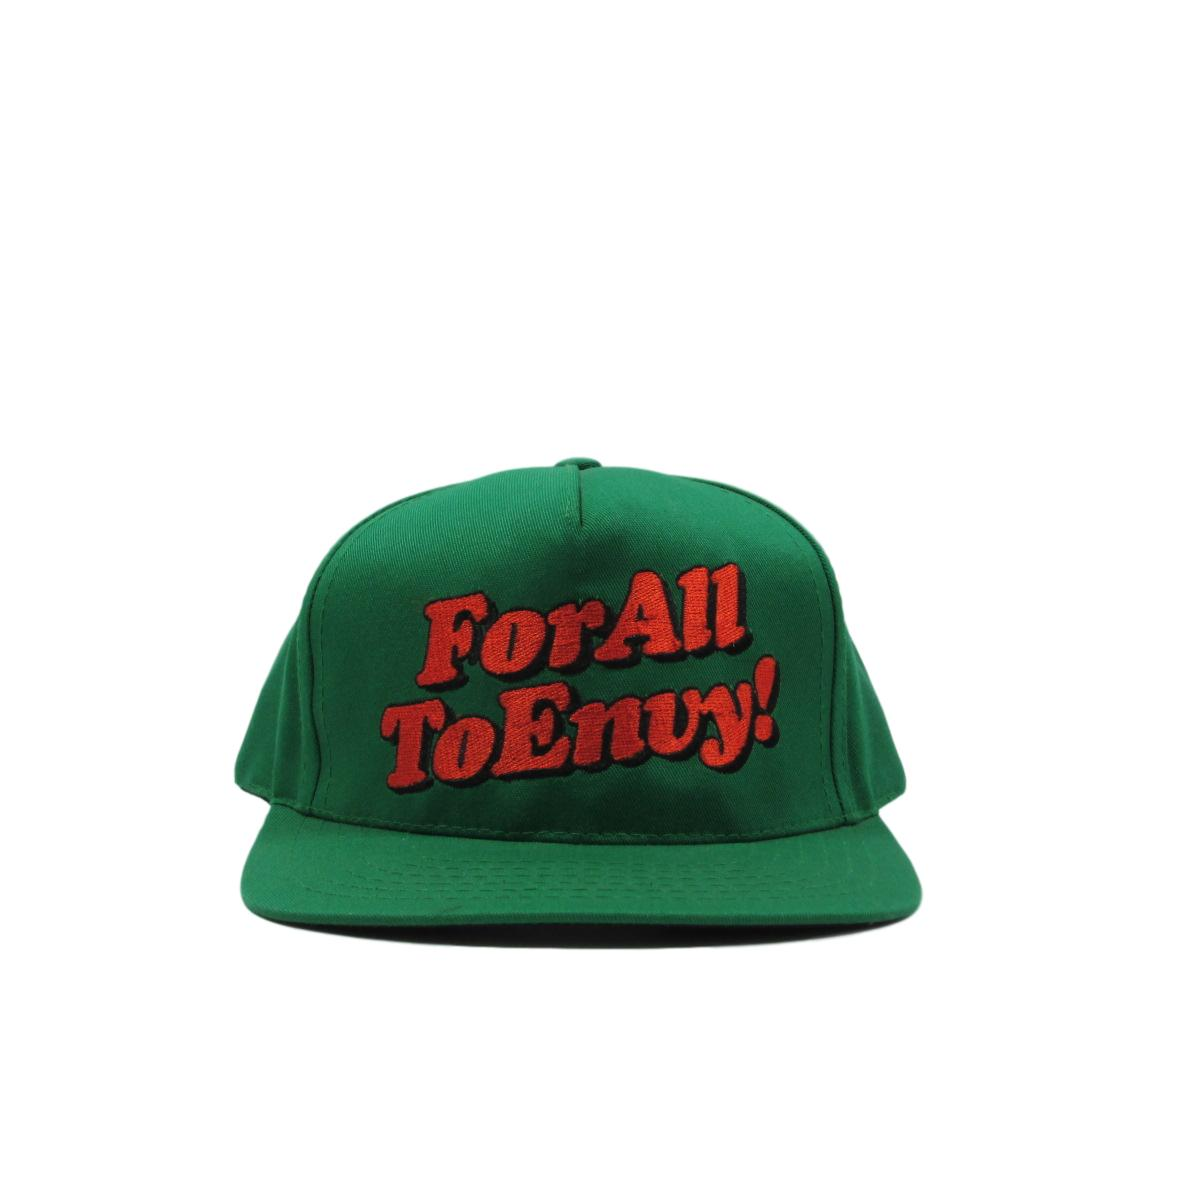 For All To Envy Vintage Snapback Hat